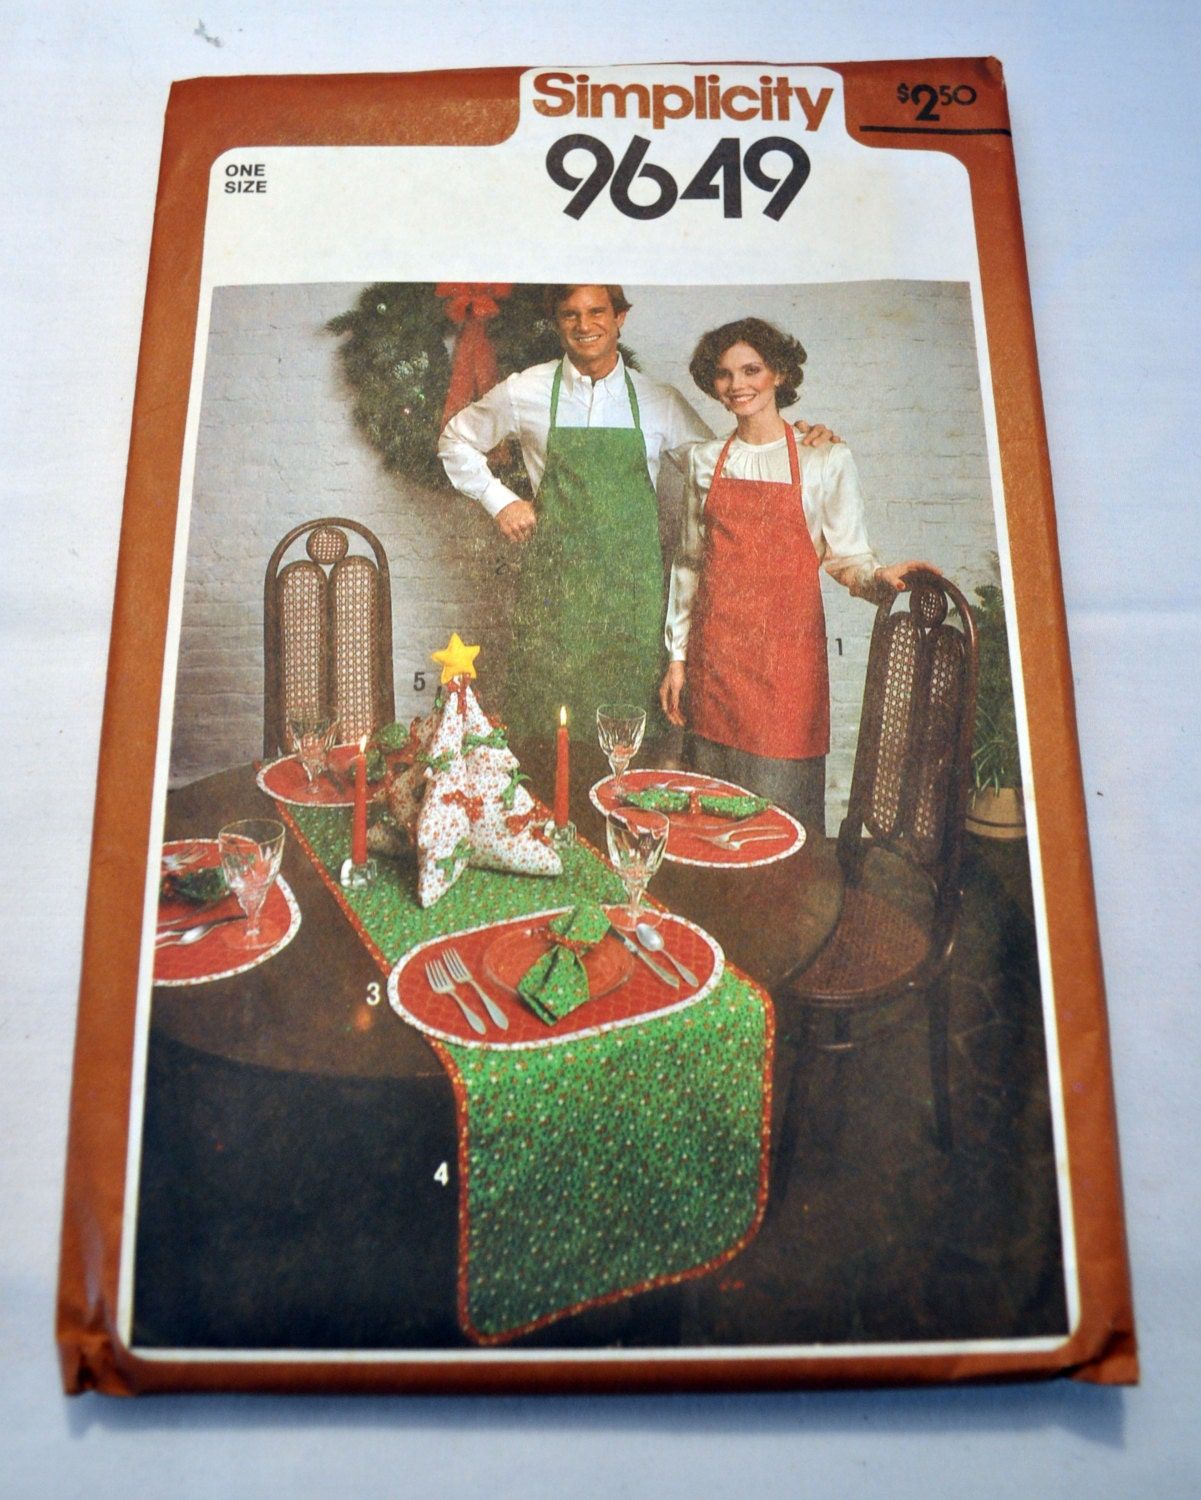 Simplicity 9649 Christmas Home Decor Sewing Pattern